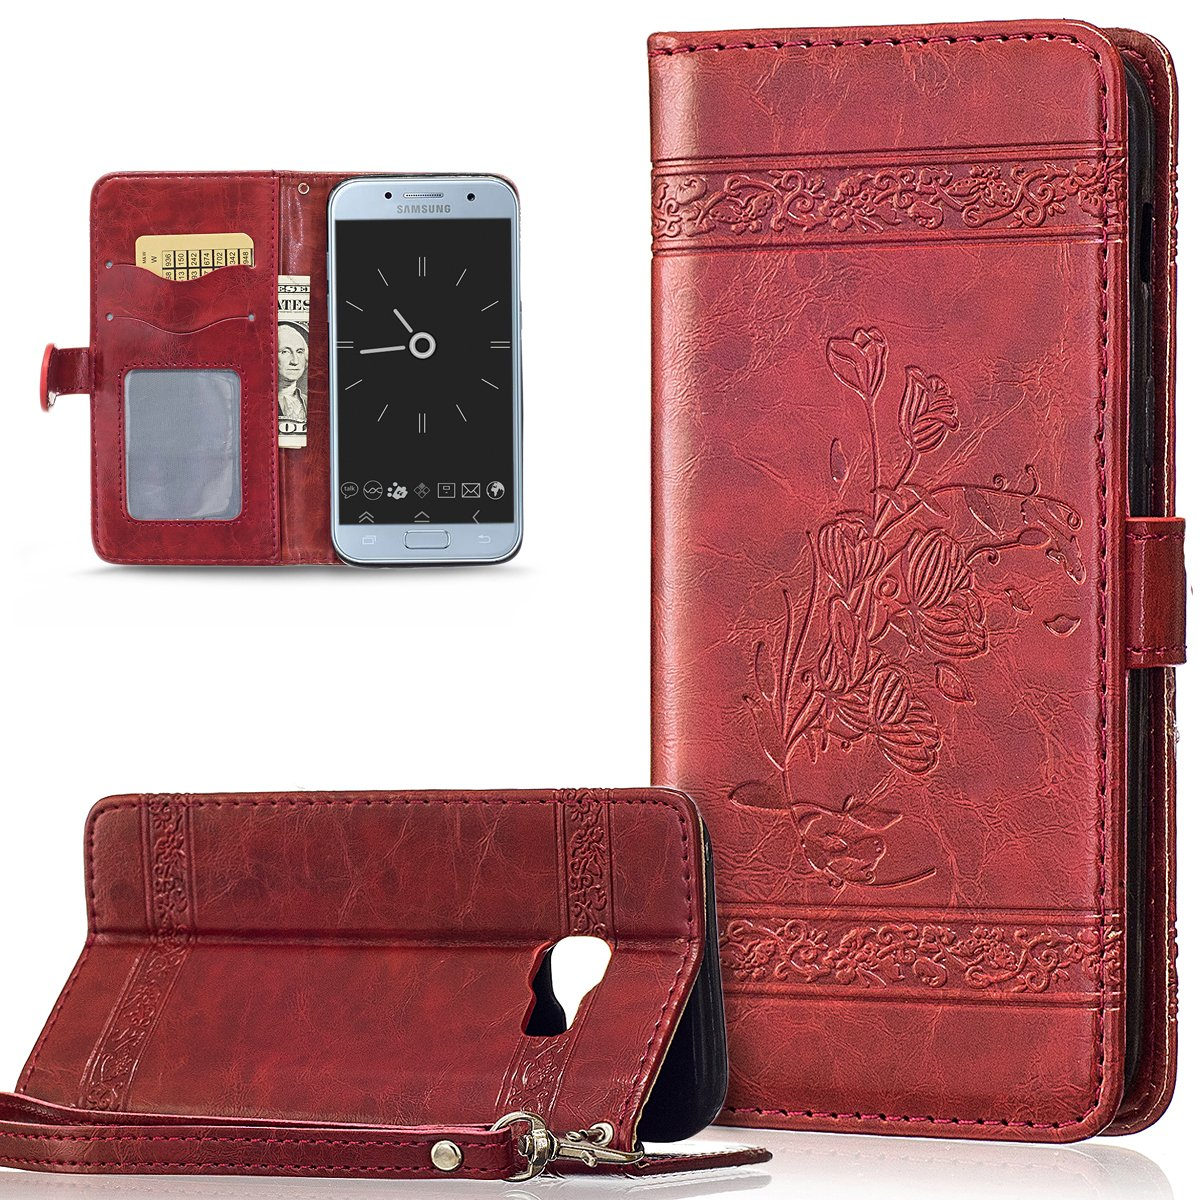 Coque Galaxy A3 2016, Etui Galaxy A3 2016, ikasus Coque Galaxy A3 2016 Bookstyle É tui Housse en Cuir Case, Embossing Motif Floral Flower Etui Housse [Stand Feature] Cuir PU Portefeuille Folio Flip Case Cover Wallet Coque Protection É tui ave